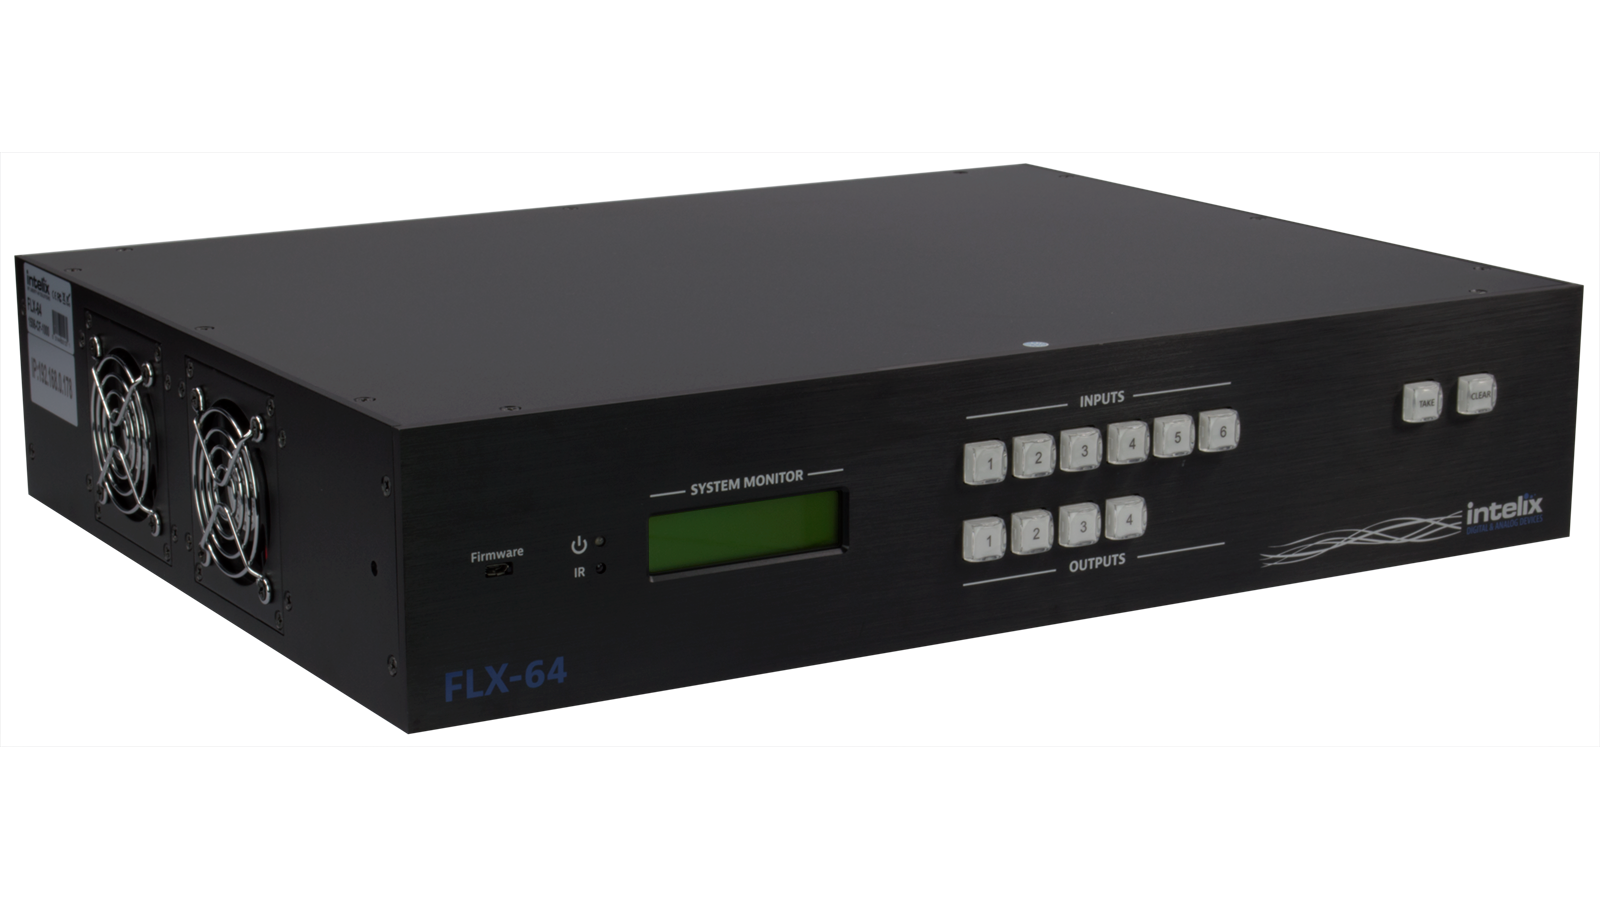 FLX Input Output HDMIHDBaseT Matrix Switcher - Conference table hdmi port